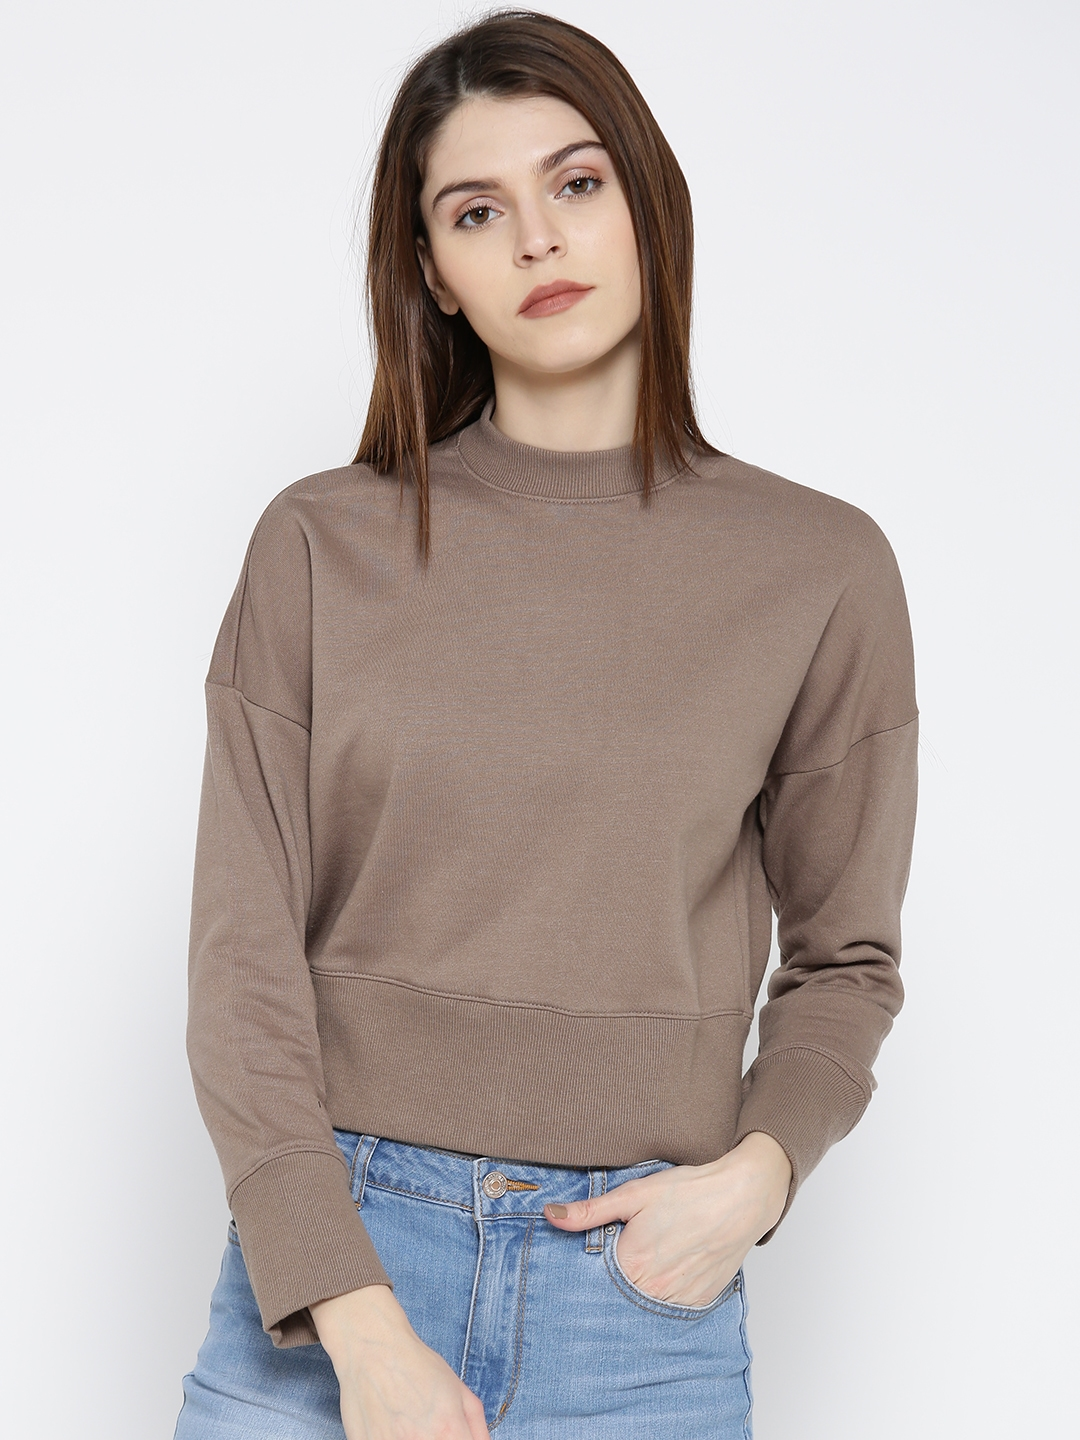 496daad77 Buy FOREVER 21 Women Taupe Solid Bomber Jacket - Jackets for Women ...